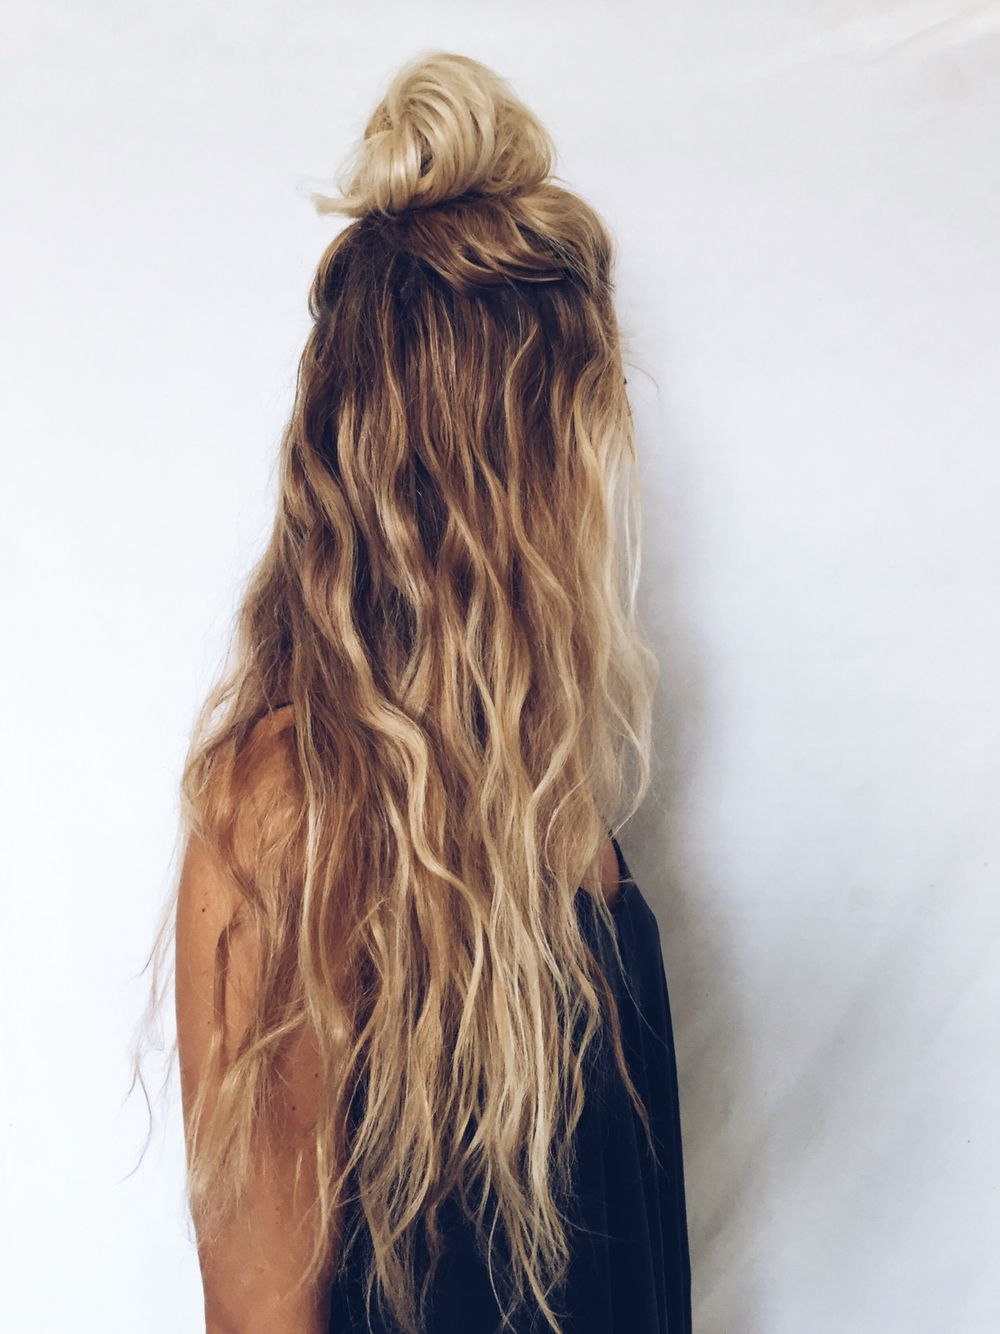 long hair, blonde, curly wavy, natural kcdoubletake | make up